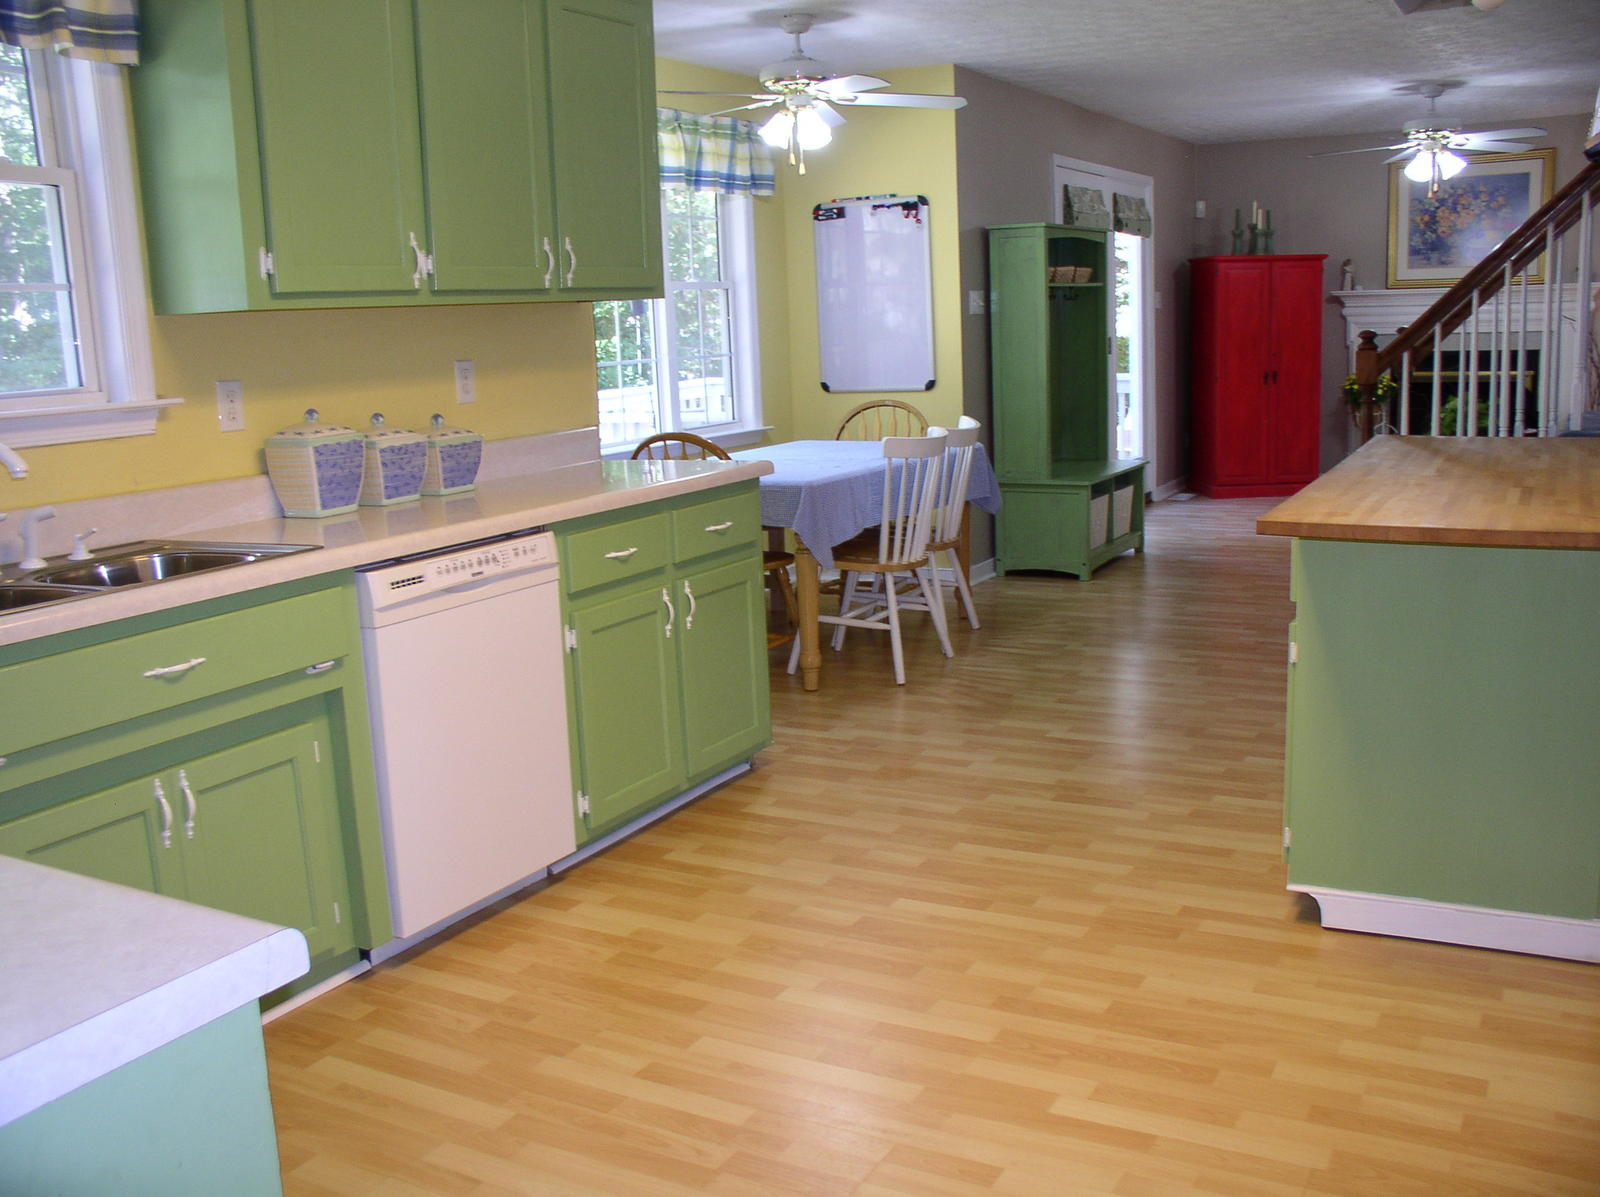 Painting your kitchen cabinets painting tips from the pros for Painting kitchen ideas walls